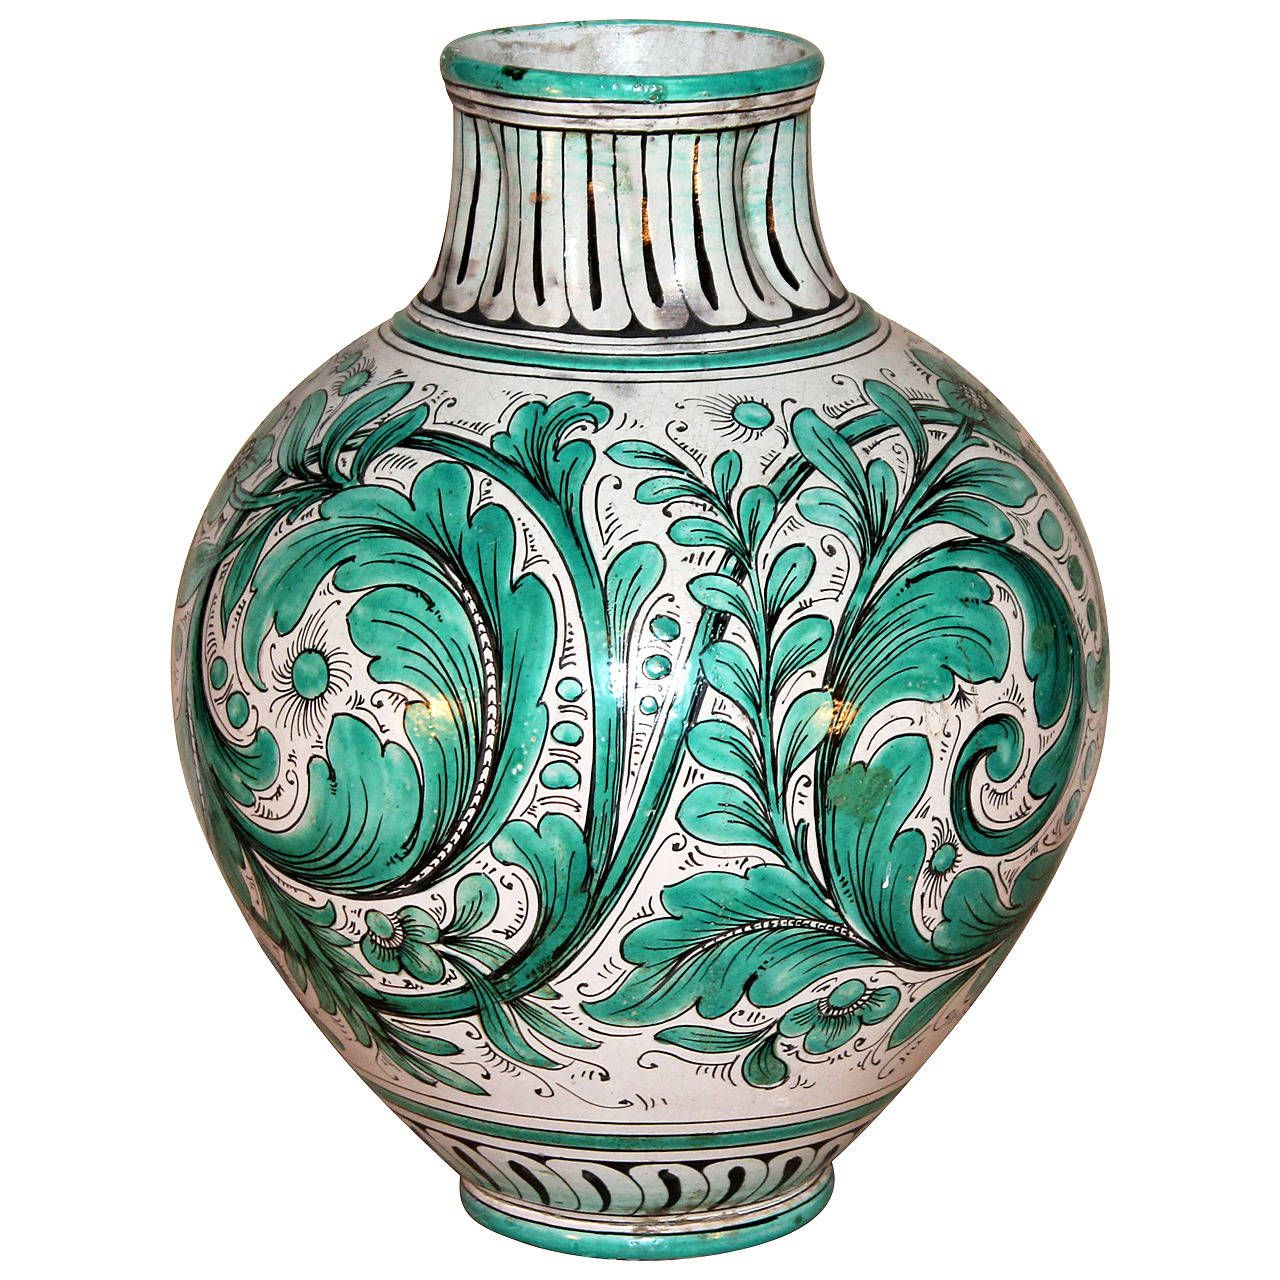 Italian vases antique best vase decoration 2018 antique italian art nouveau vase pitcher home decor reviewsmspy